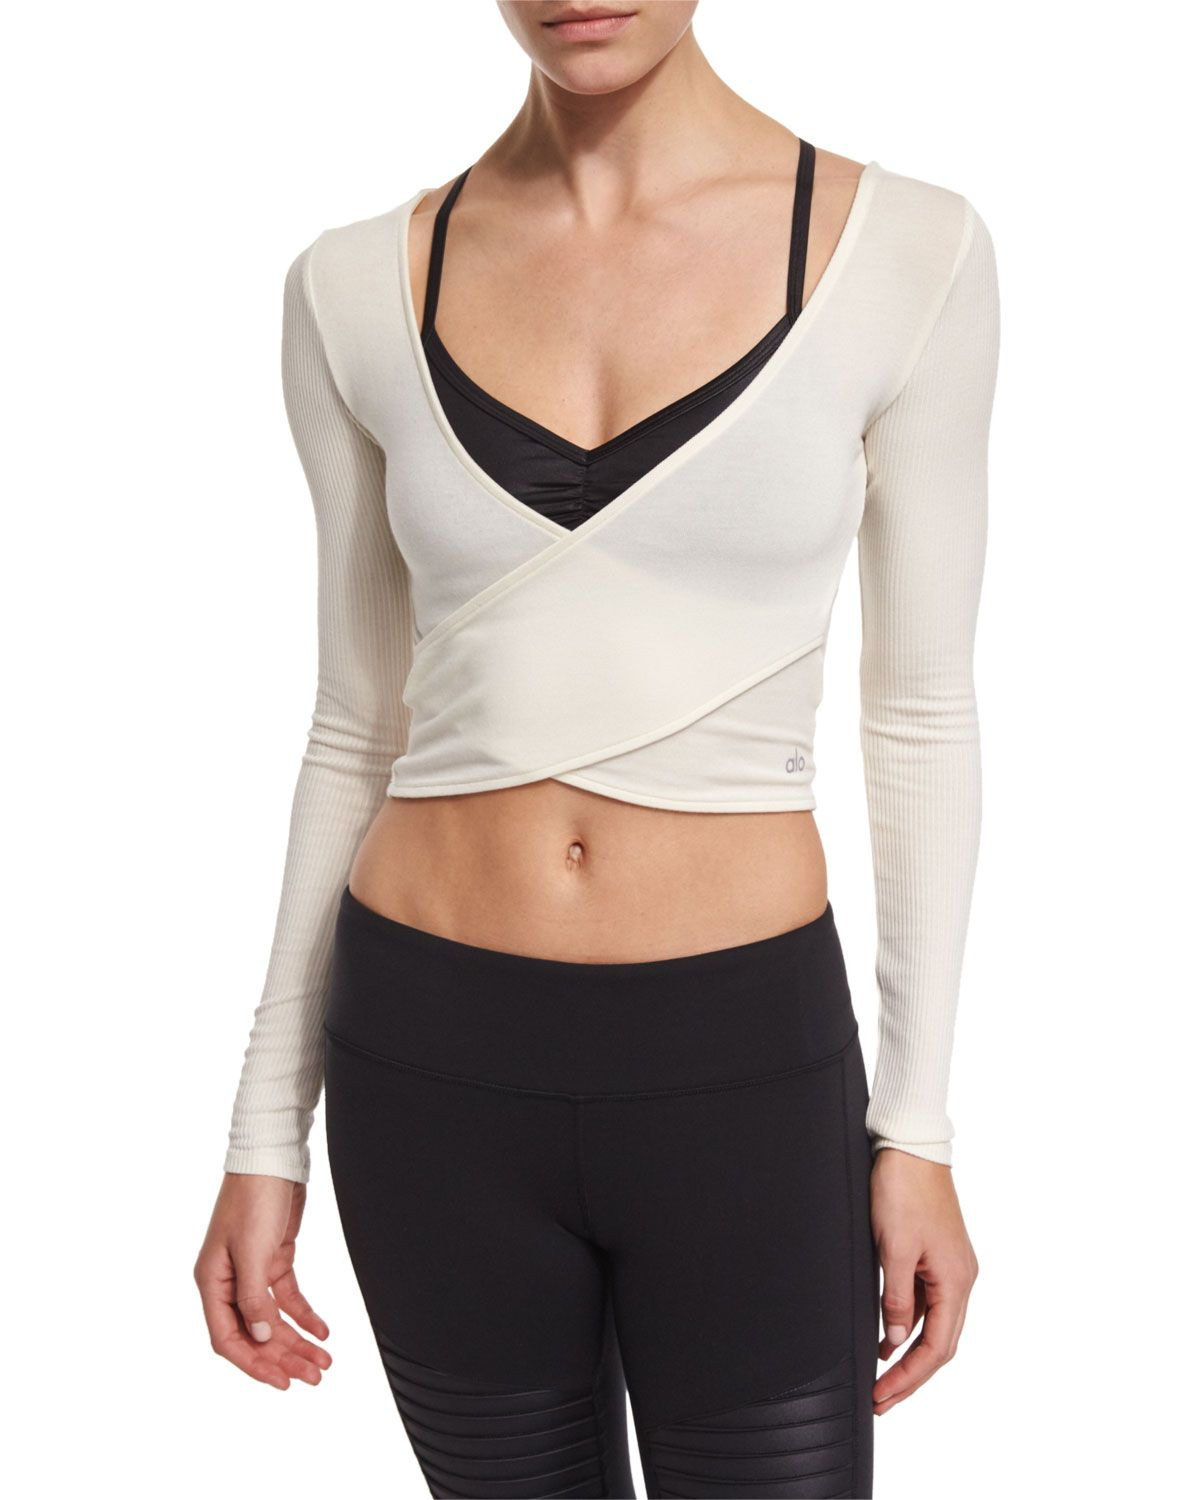 7891d5ac3 Amelia Long-Sleeve Crop Top, Women's, Size: XS, Natural - Alo Yoga ...